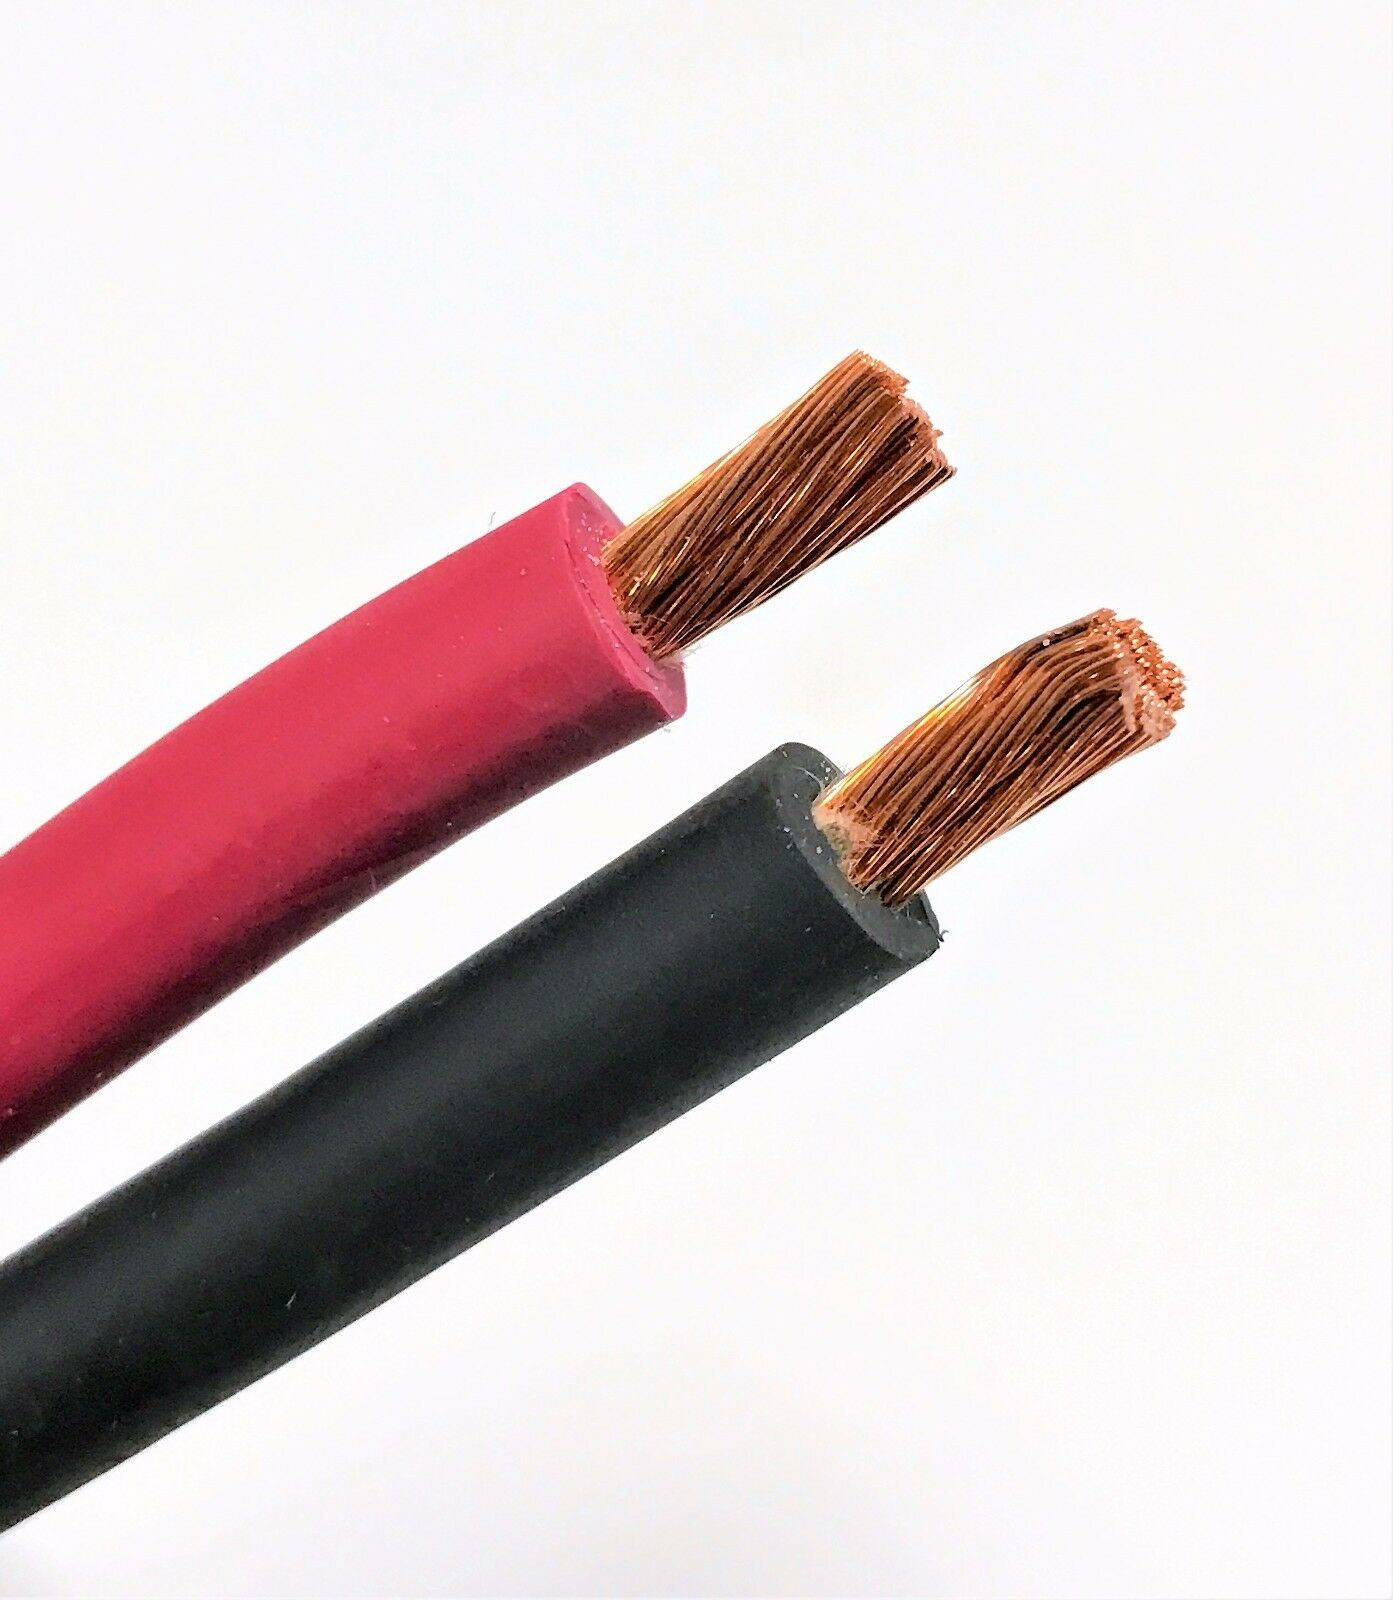 Welding Cable Red Black 8 AWG GAUGE COPPER WIRE BATTERY SOLAR LEADS ...